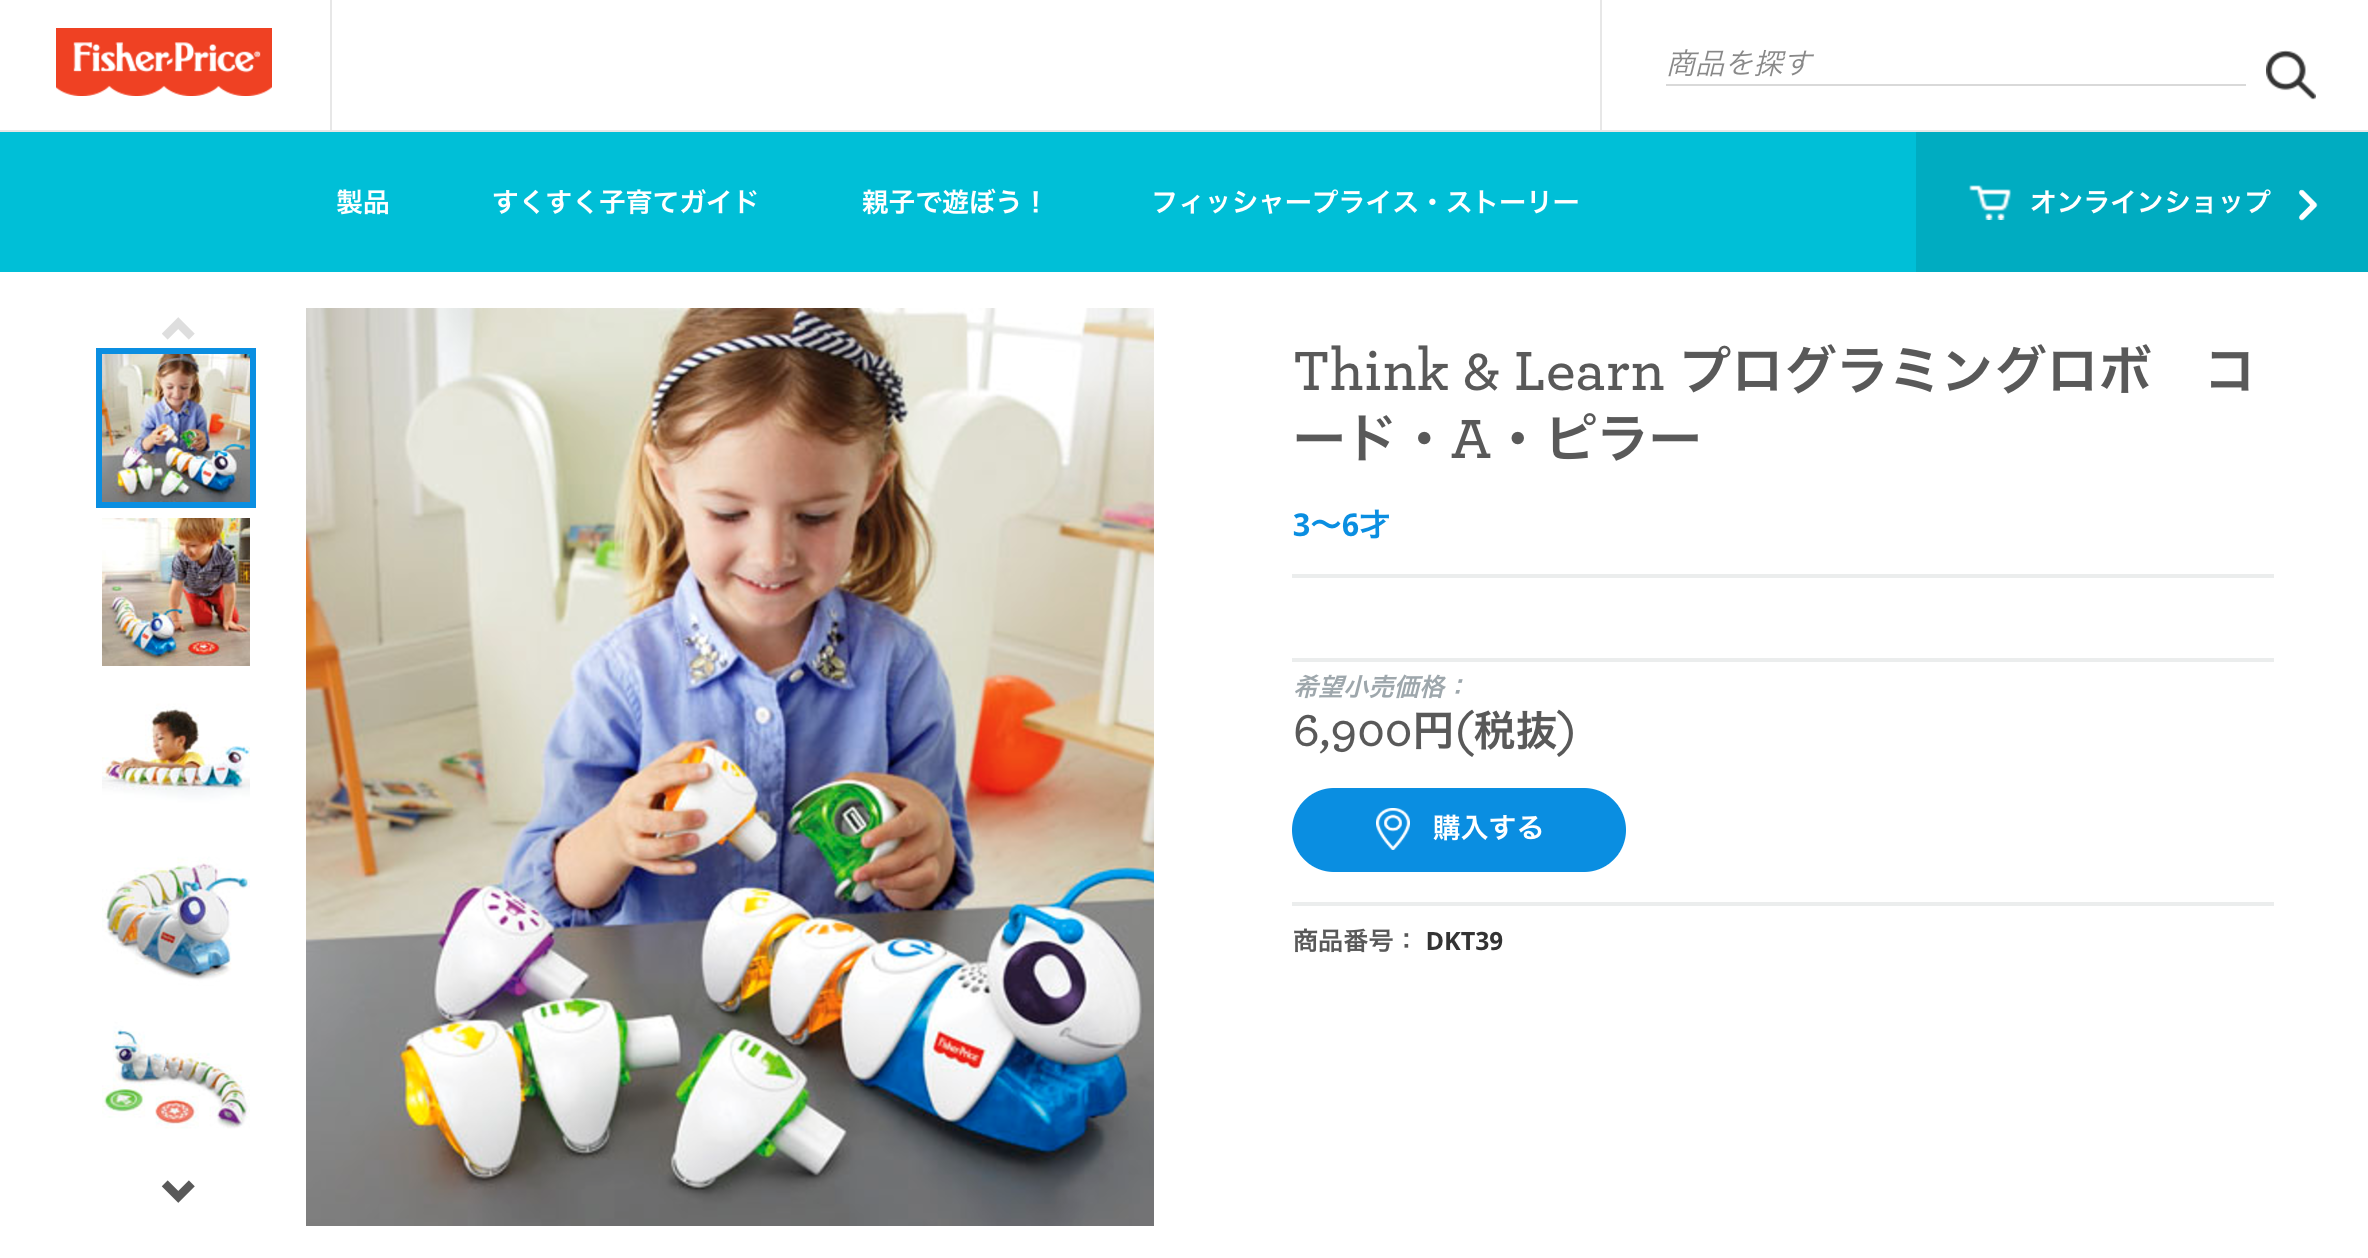 FireShot Capture 255 - Think & Learn プログラミングロボ コー_ - http___www.fisher-price.com_ja_JP_product_98301